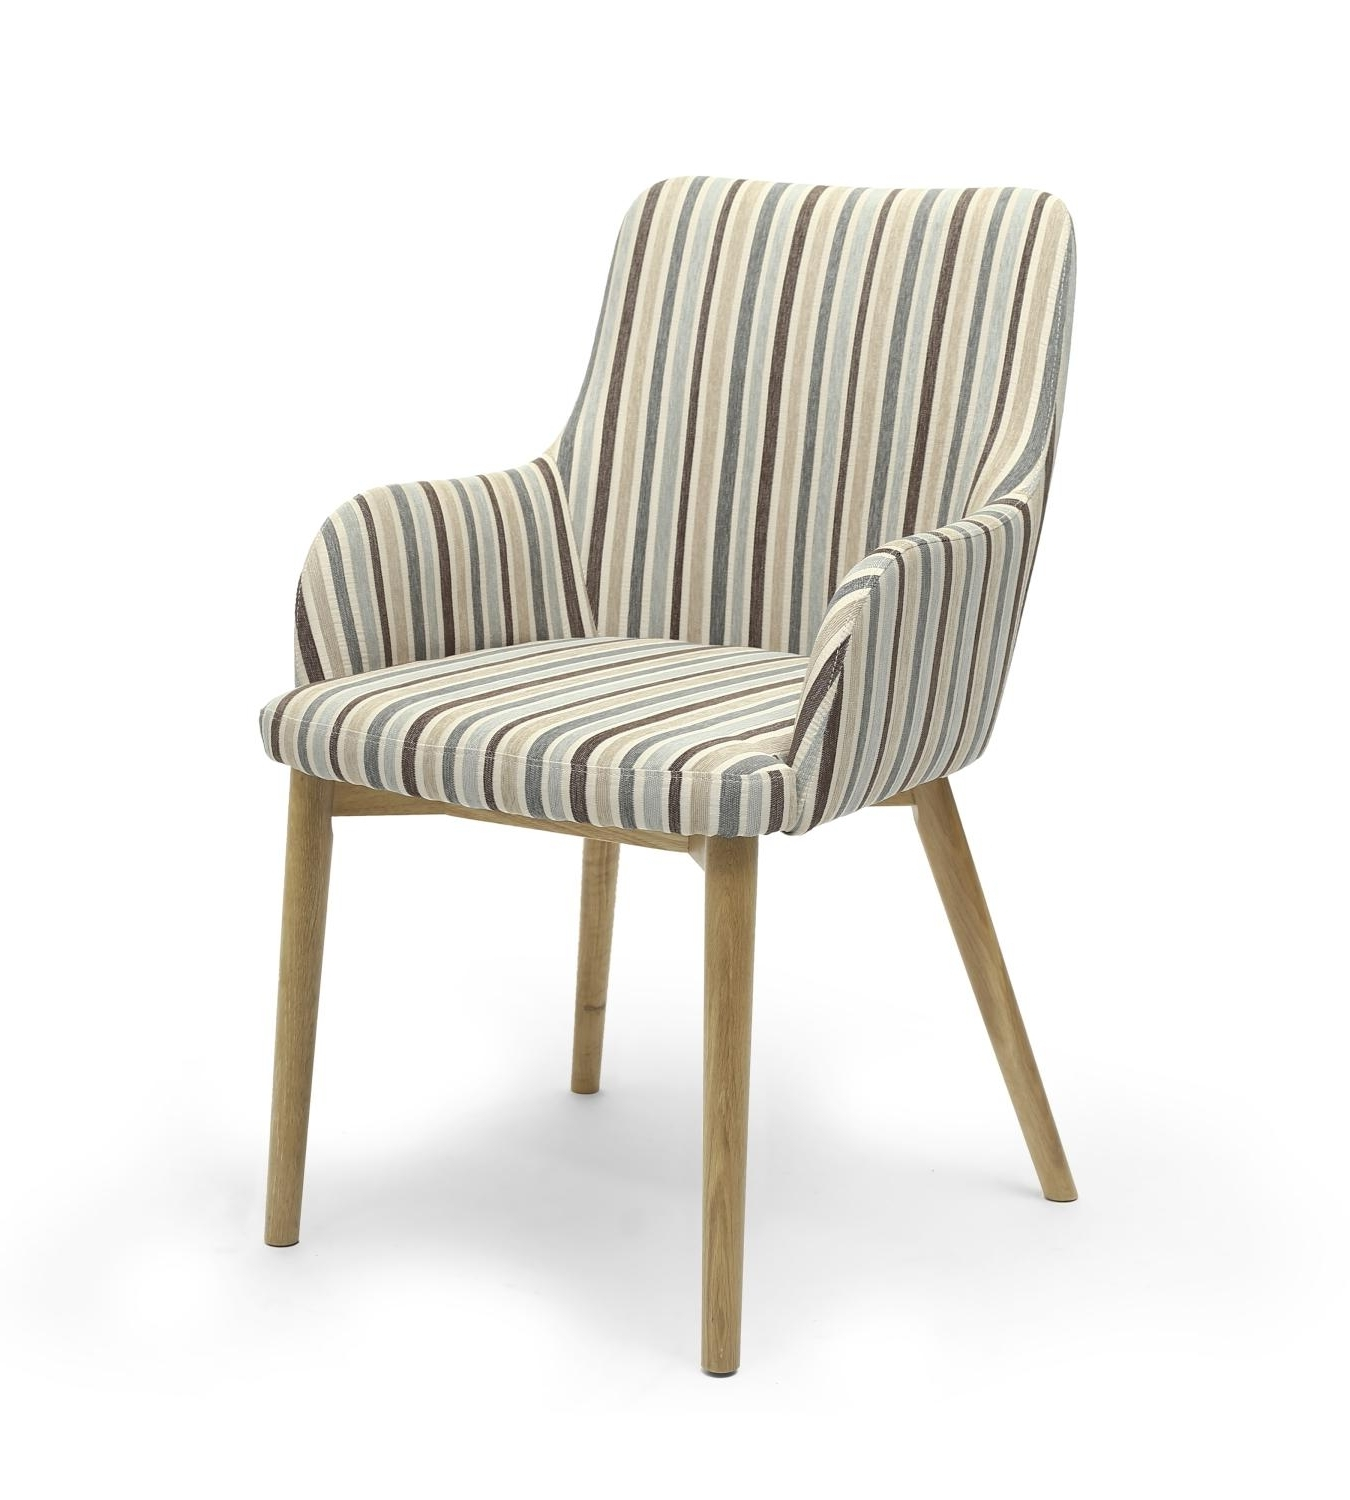 Sidcup Duck Egg Blue Stripe Dining Chair – L'amore Furnishings Intended For Latest Blue Stripe Dining Chairs (View 16 of 20)